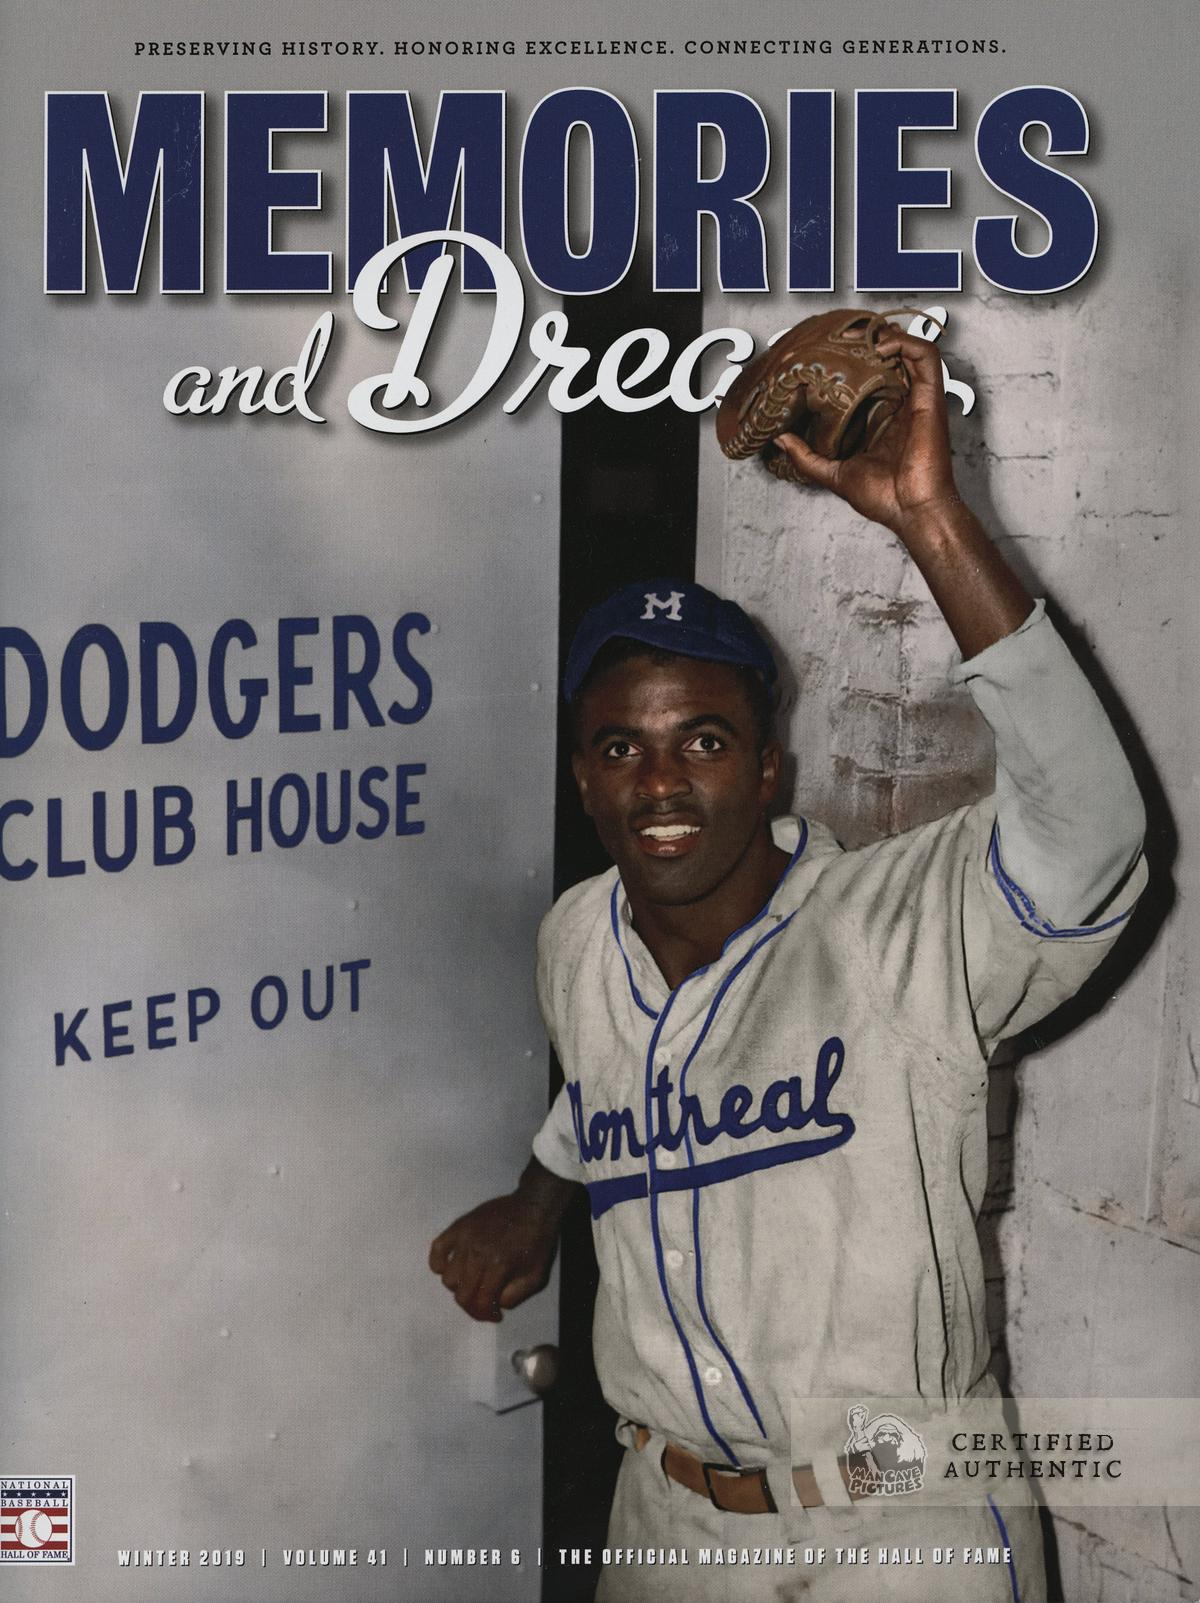 Jackie Robinson 1947, HOF Memories & Dreams Magazine Cover (Nov 2019)